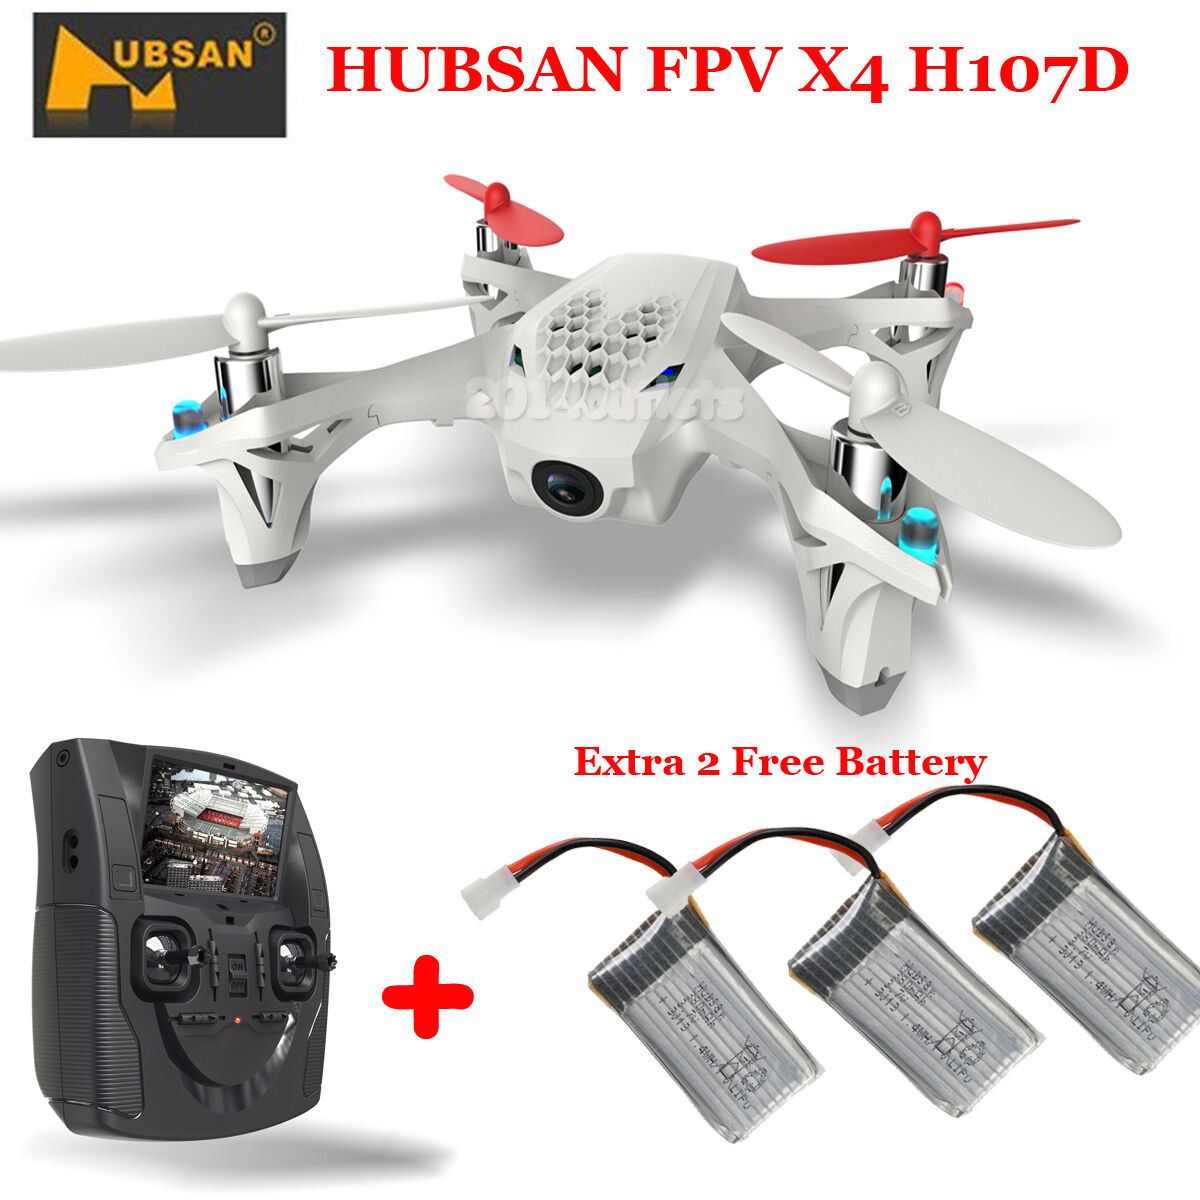 HUBSAN-X4-H107D-5-8G-FPV-RC-Quadcopter-Drone-LCD-Transmitter-Camera-3-Batteries